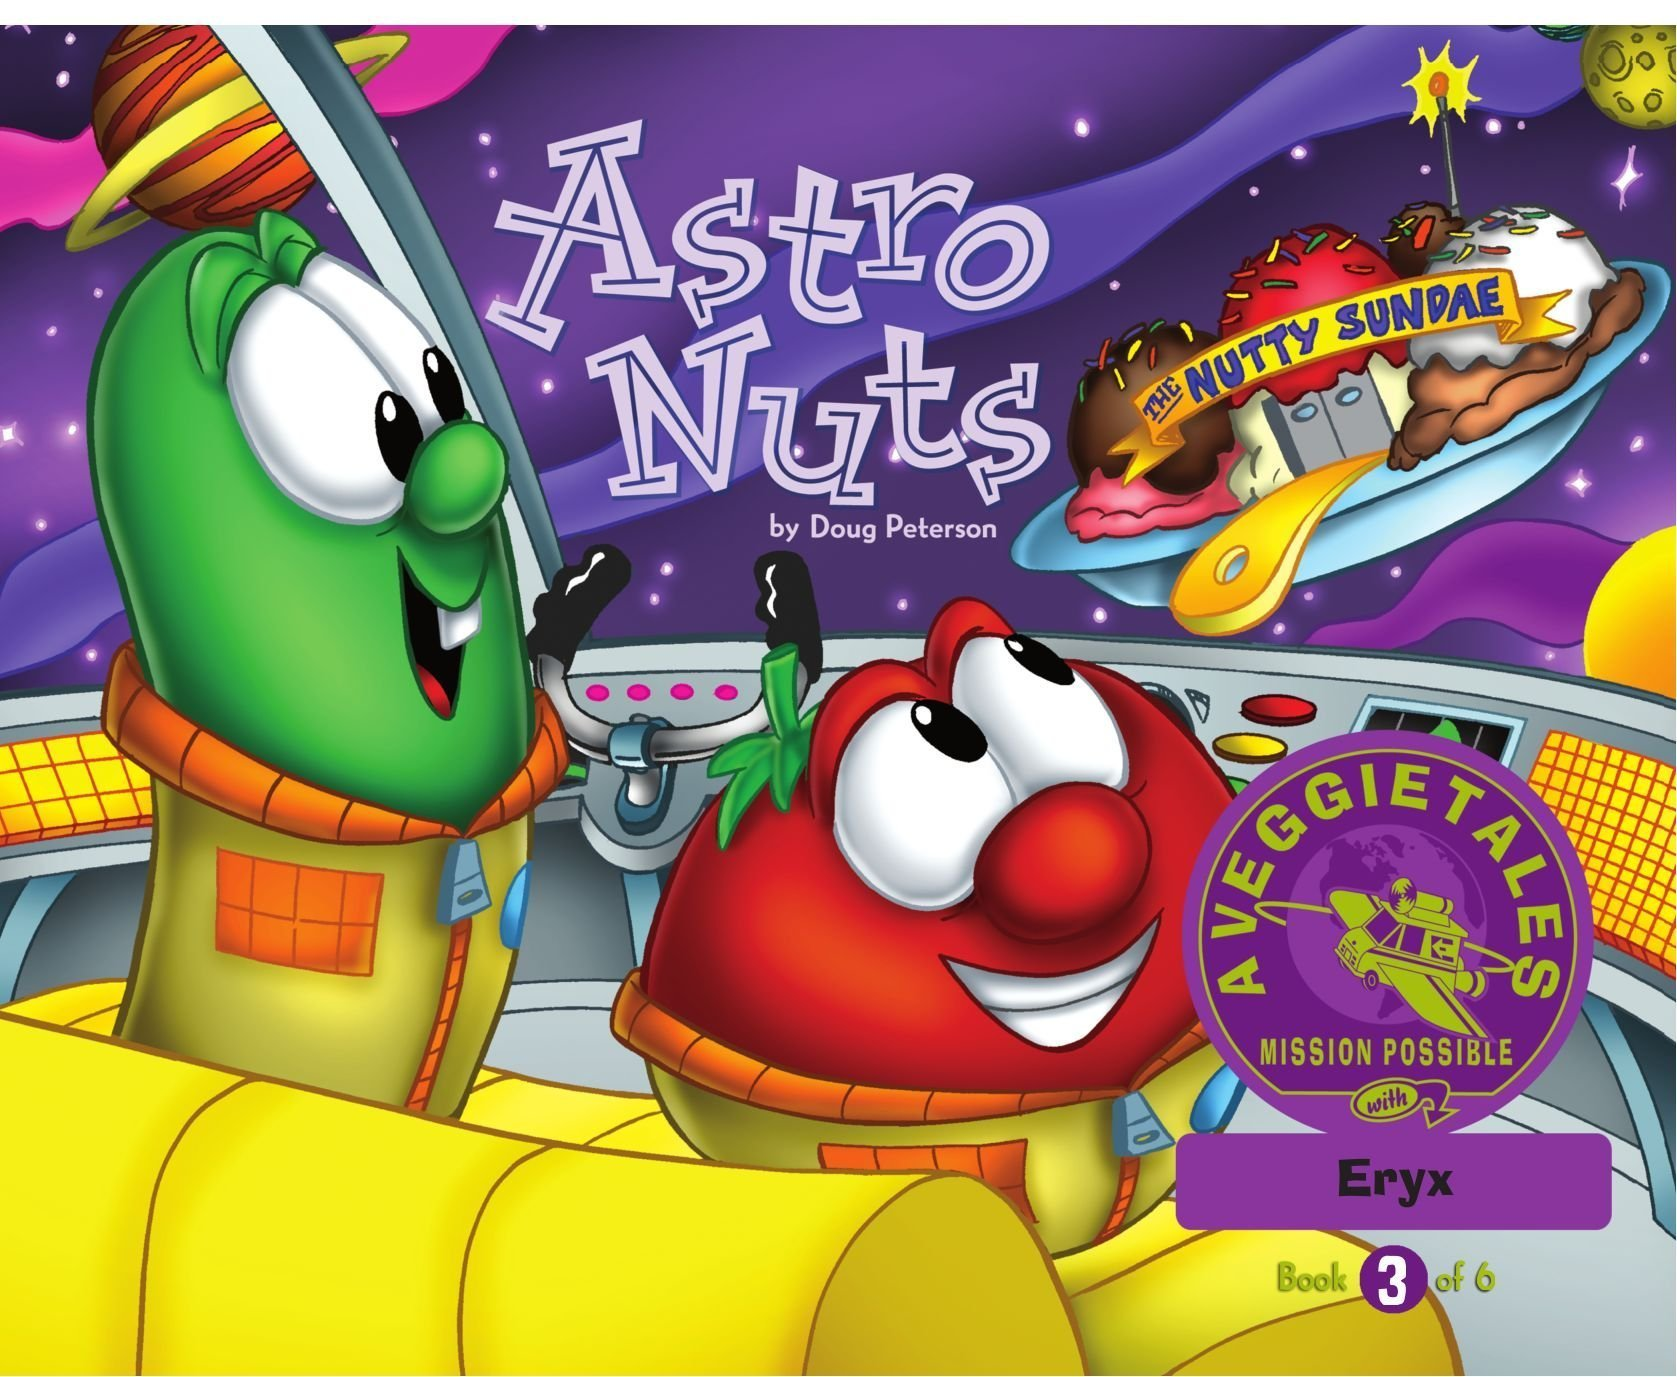 Astro Nuts - VeggieTales Mission Possible Adventure Series #3: Personalized for Eryx (Boy) PDF